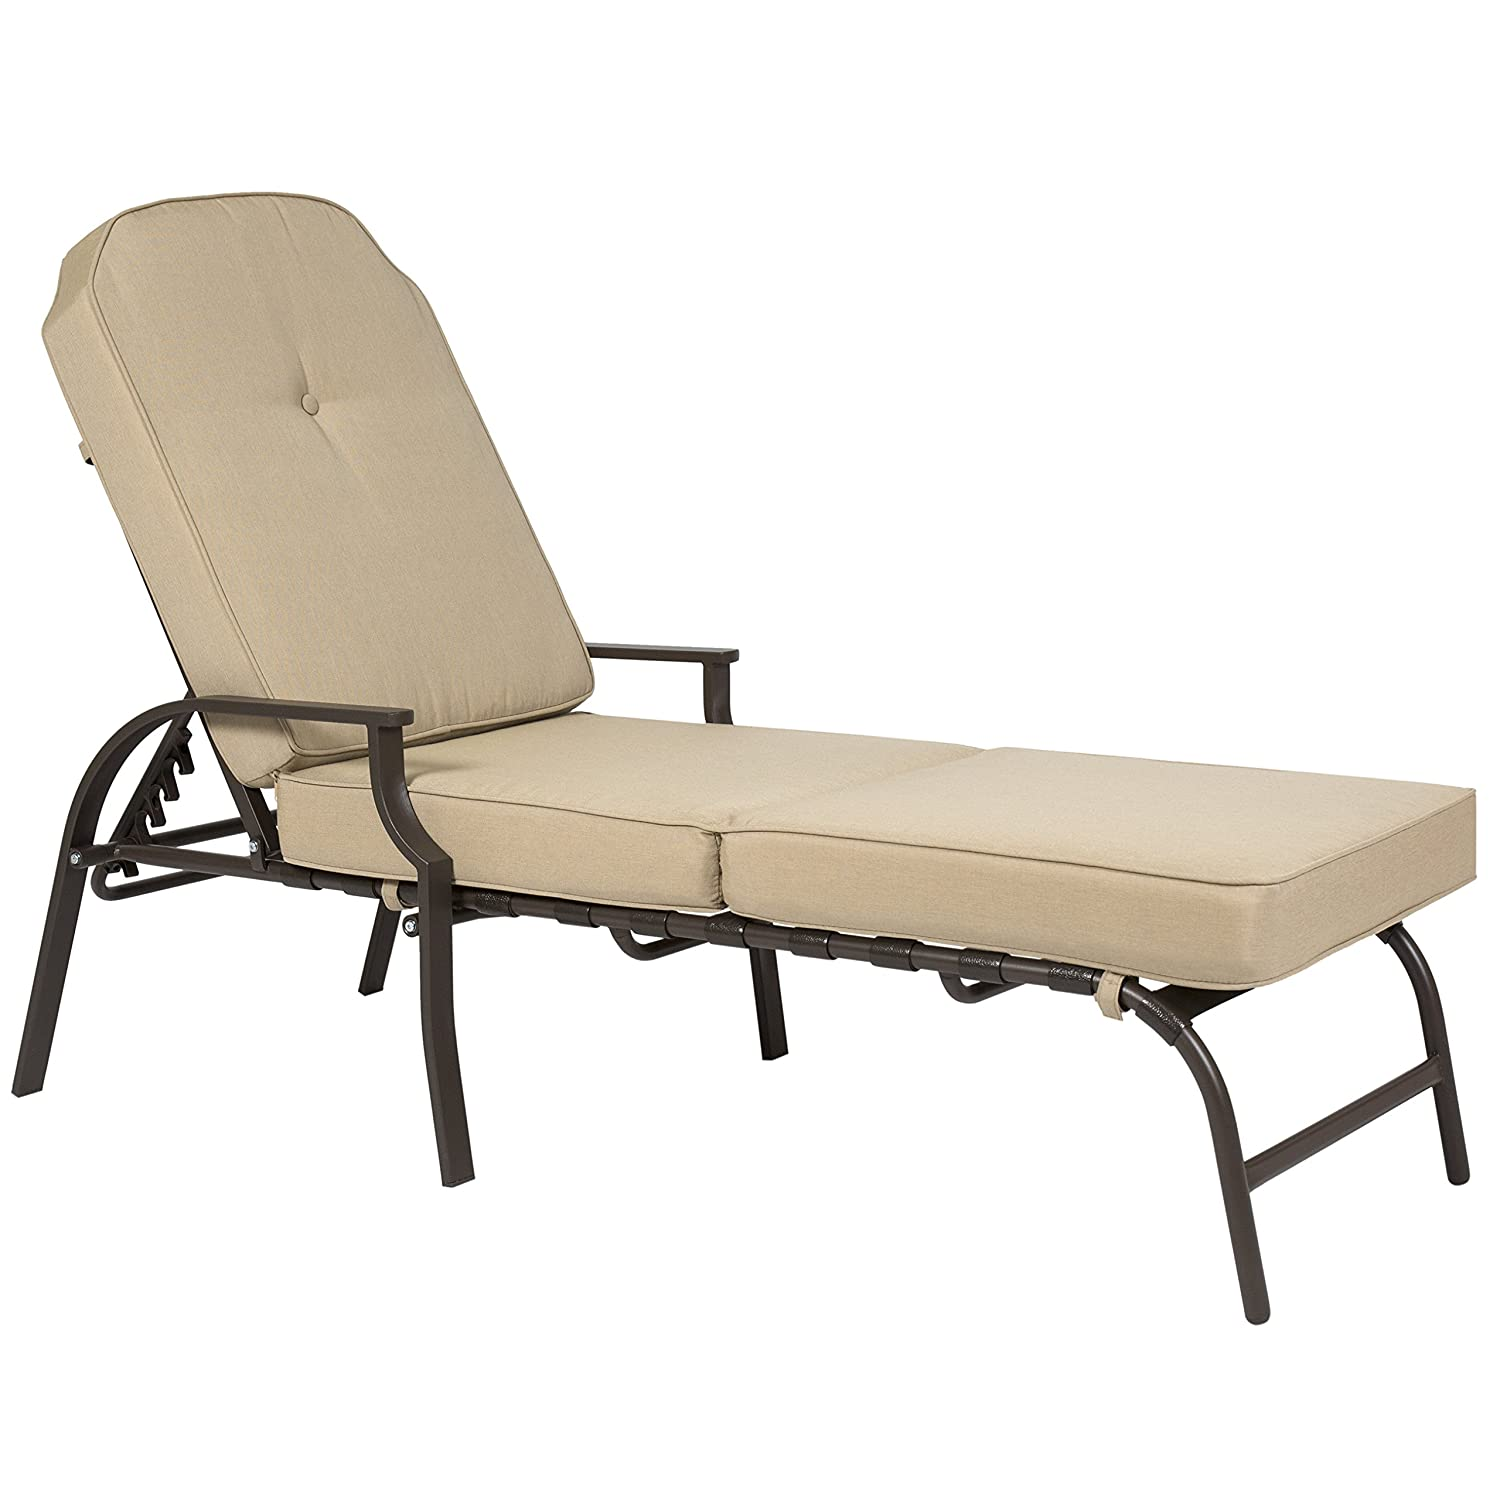 Amazon.com : Best Choice Products Outdoor Chaise Lounge Chair W ...